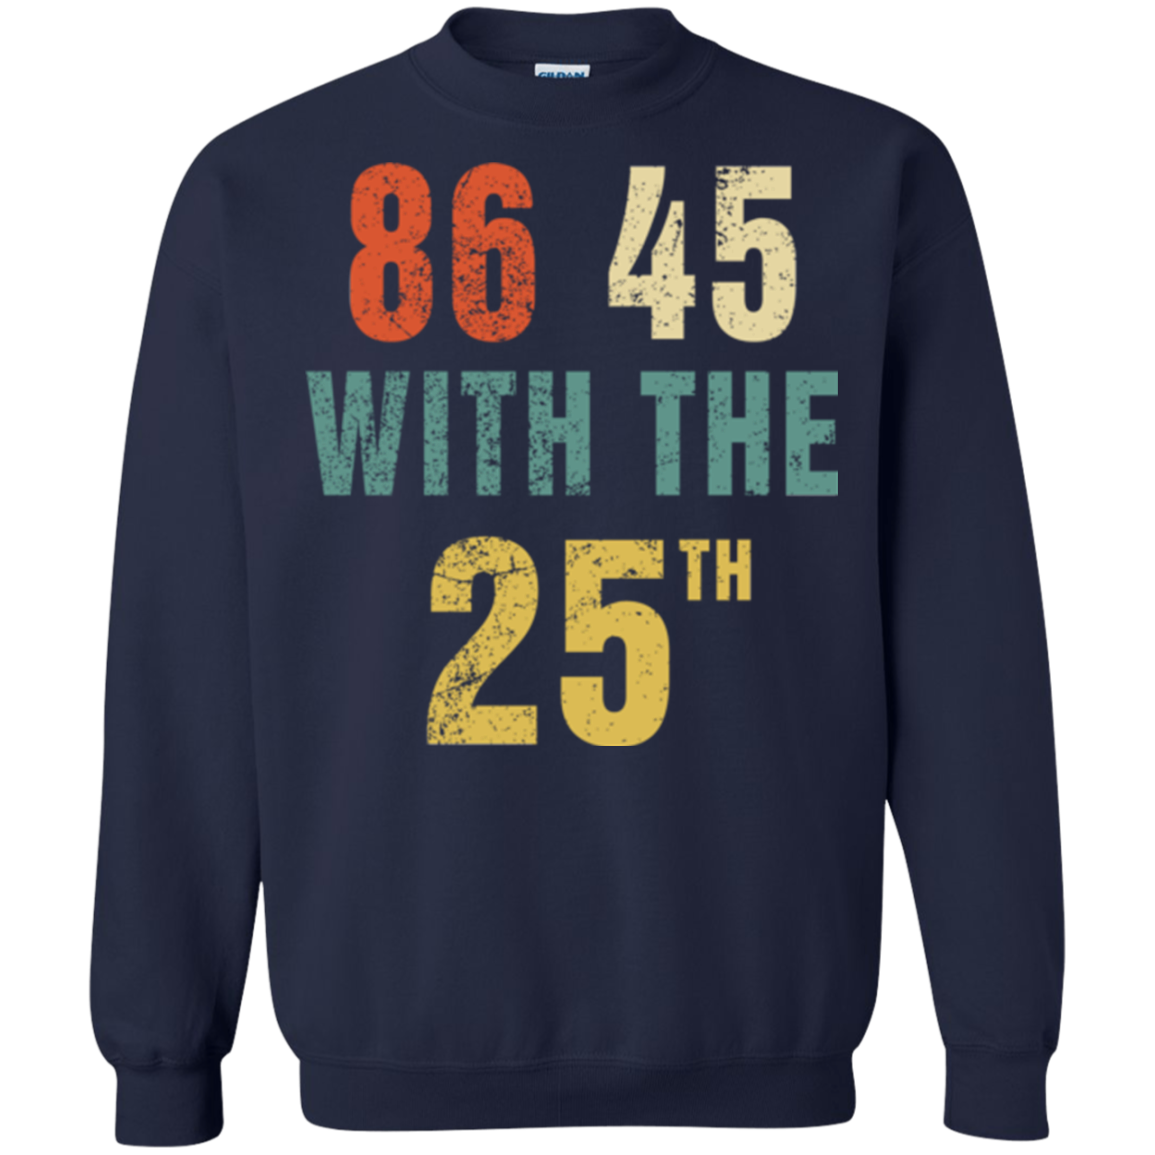 86 45 T shirts 86 45 With the 25th Hoodies Sweatshirts TH